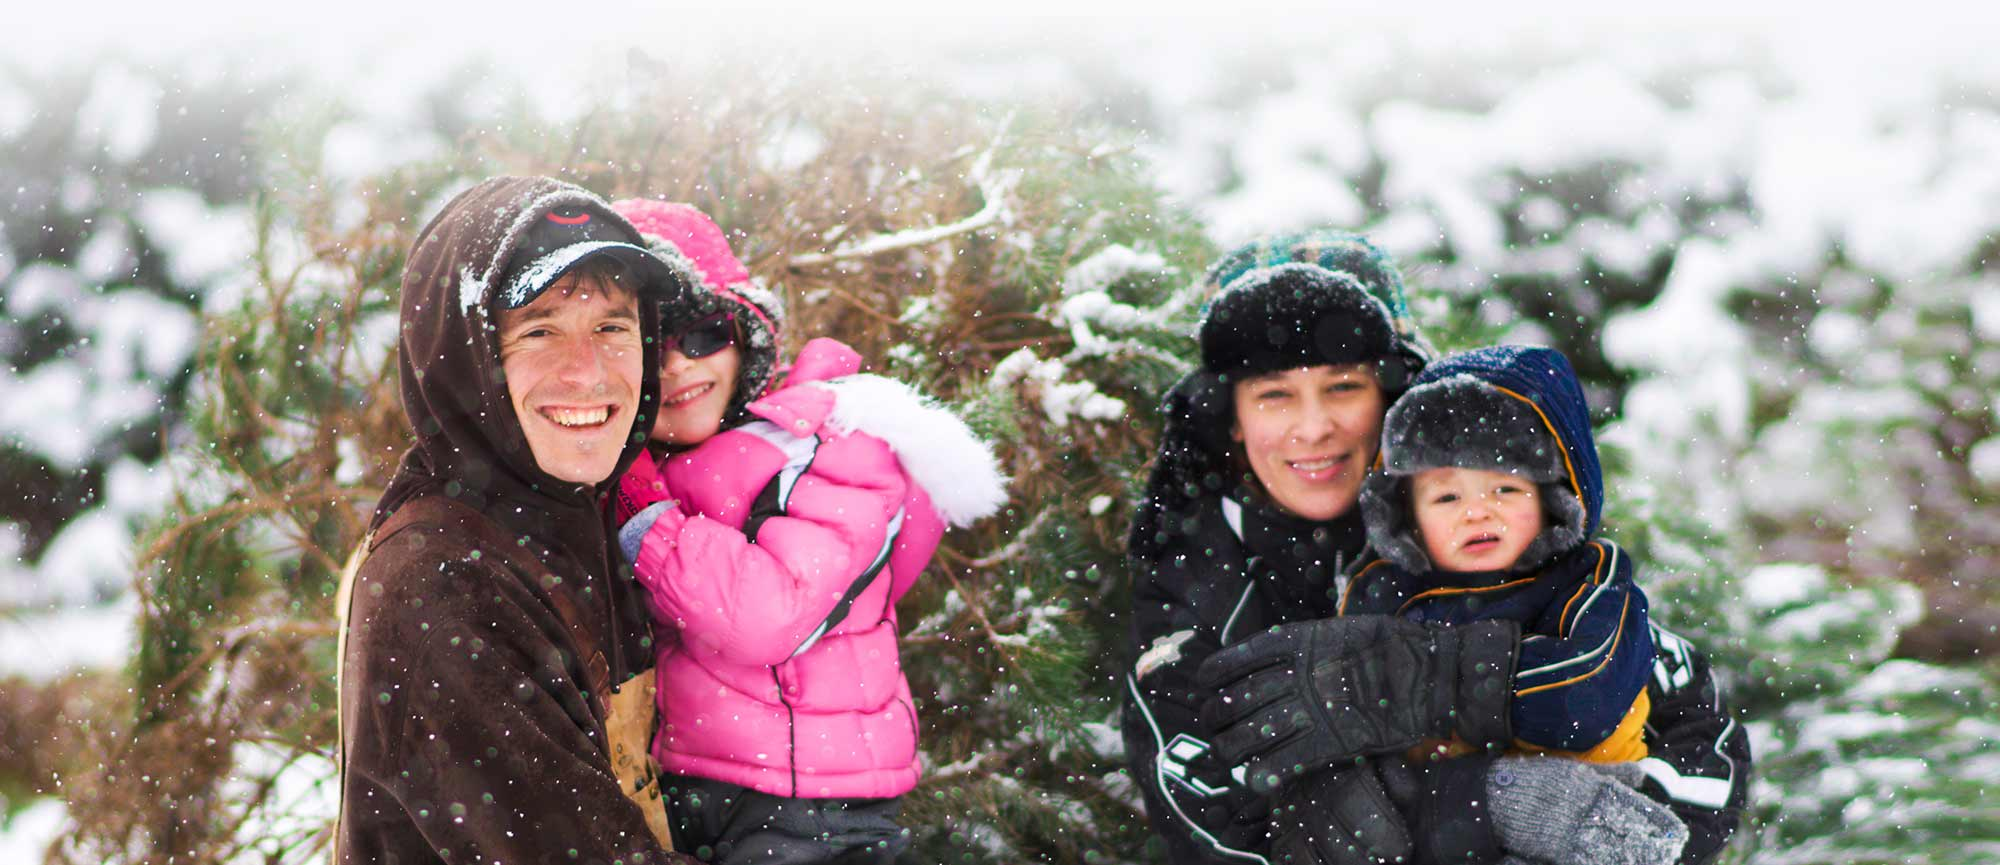 Cut-your-own live Christmas tree at Richardson Christmas Tree Farm in Spring Grove, Illinois